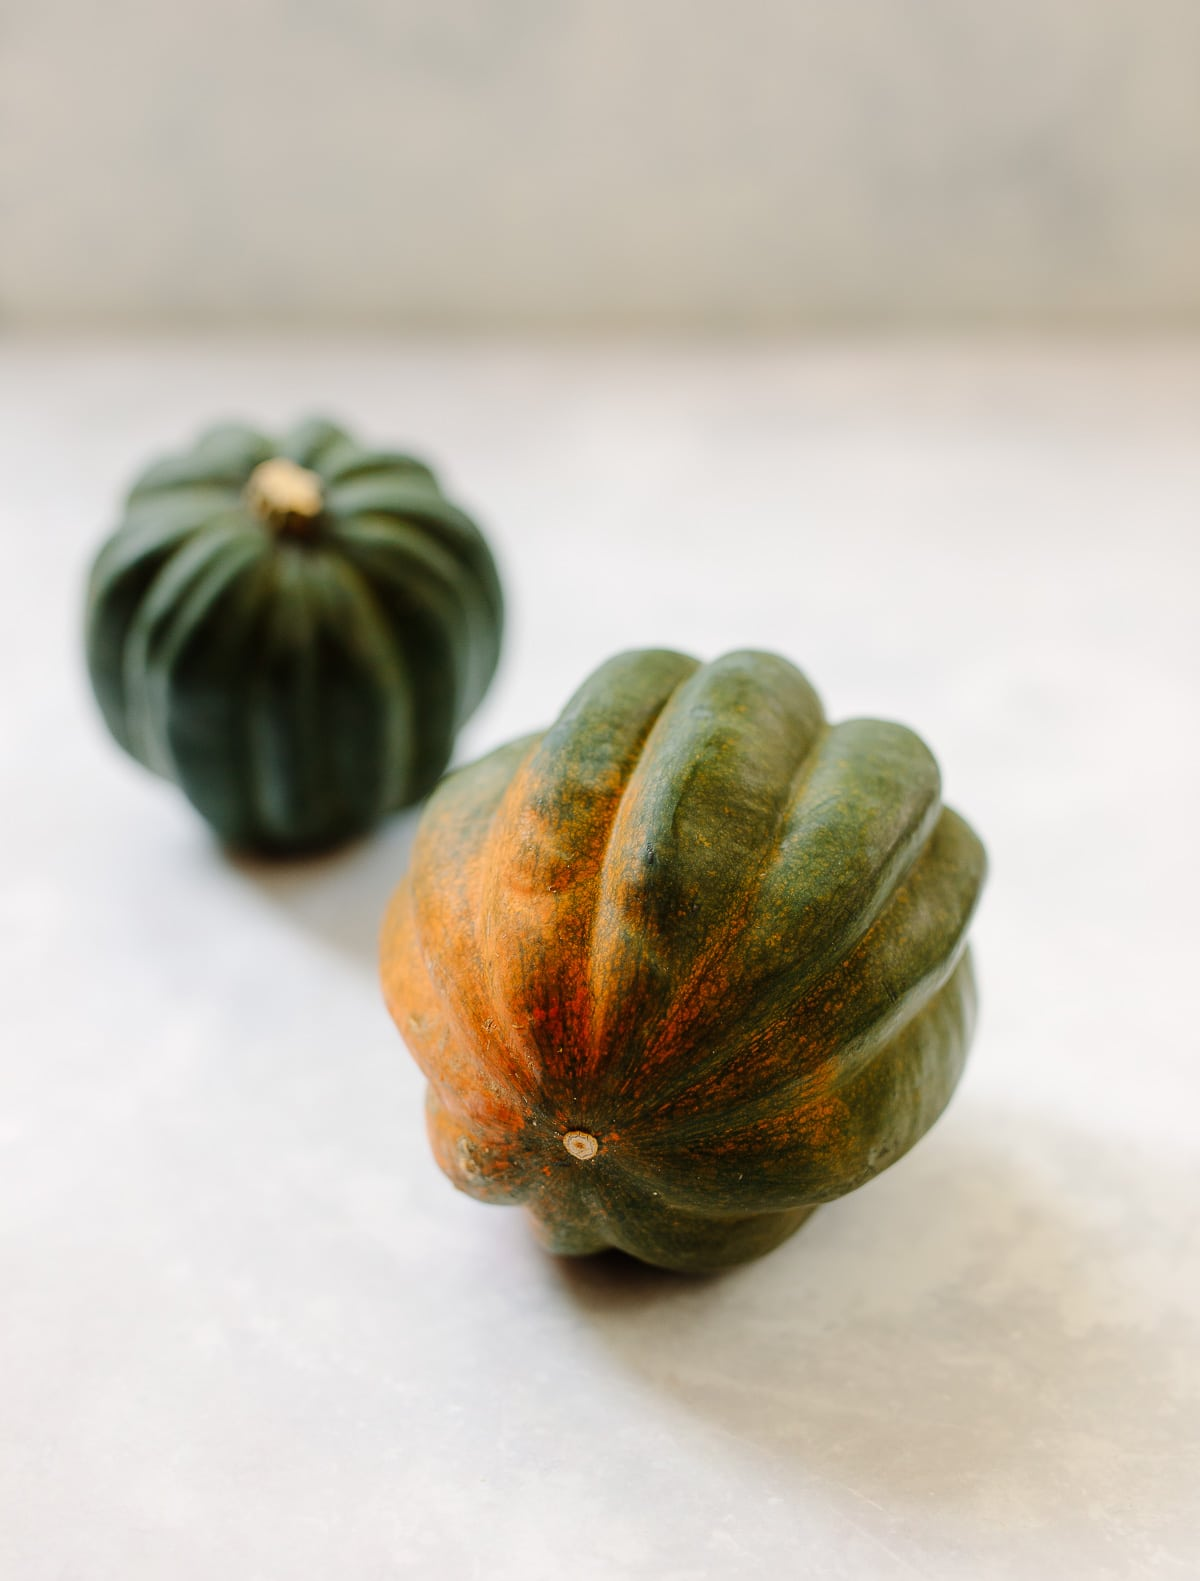 Image of two acorn squash on a white marble counter